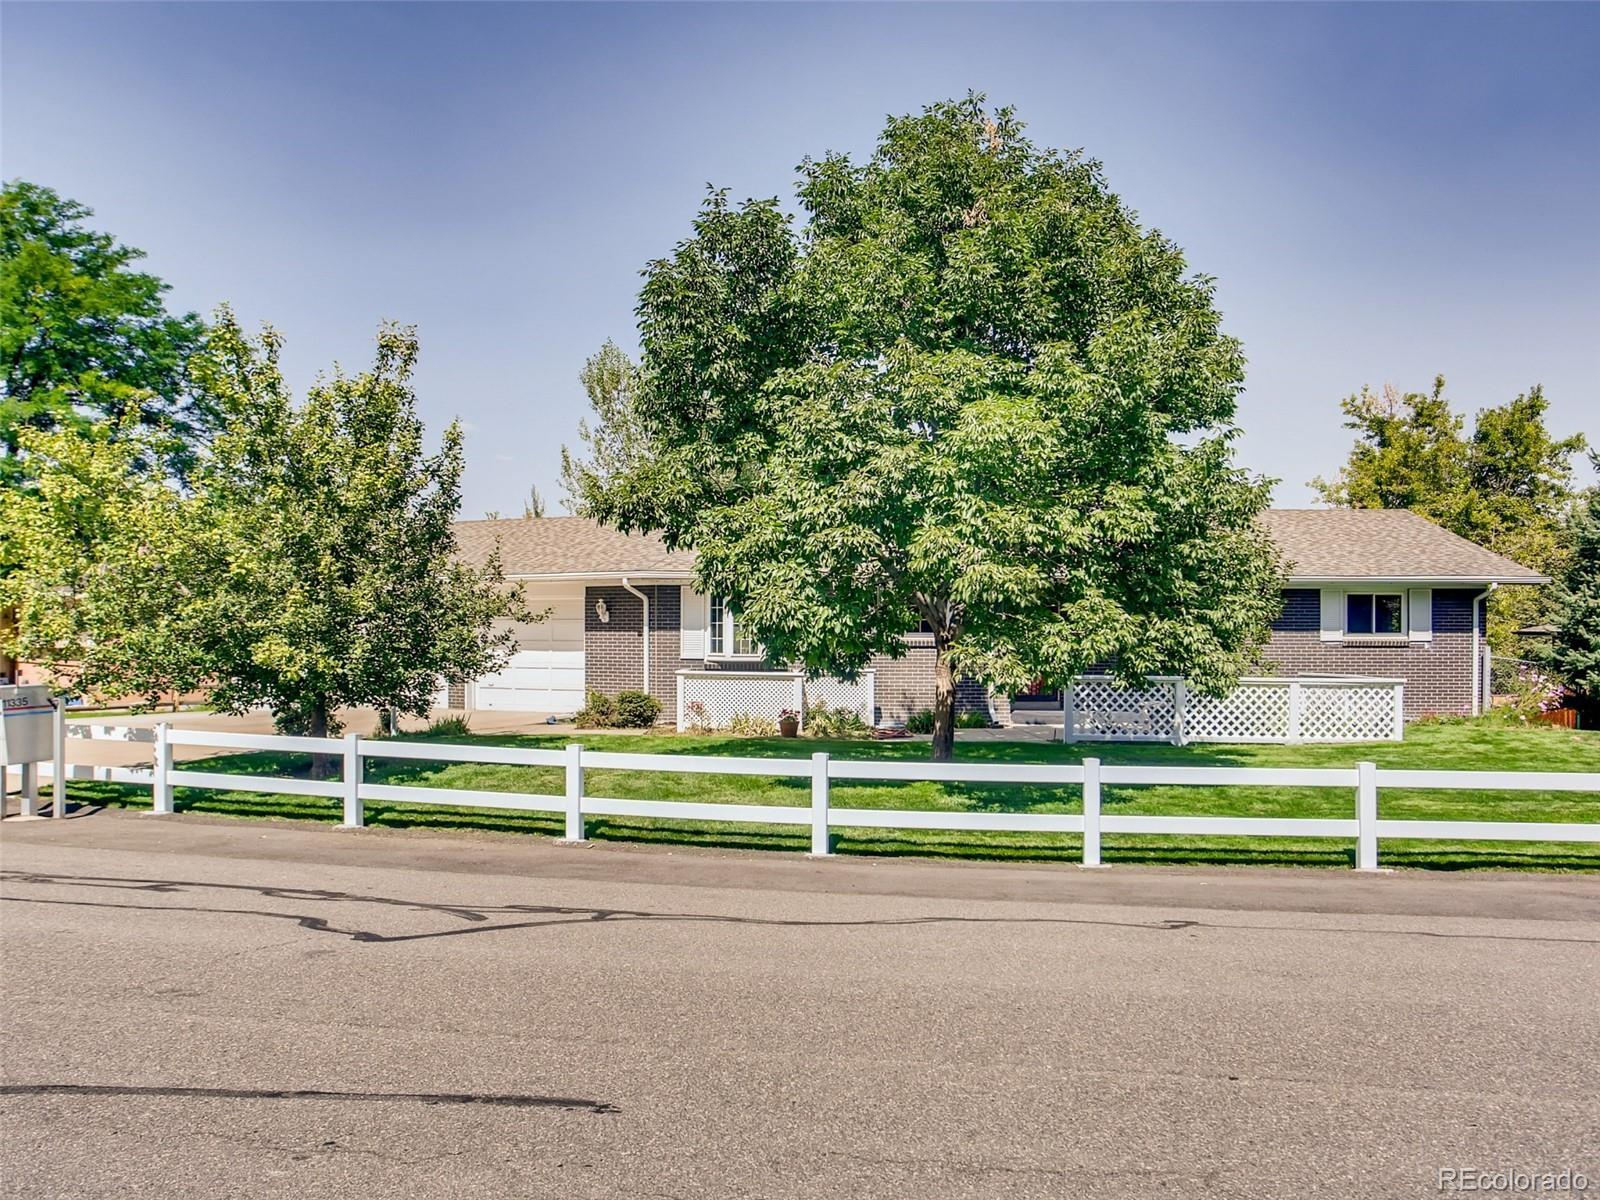 11335 W 25th Place, Lakewood, CO 80215 - #: 2398296